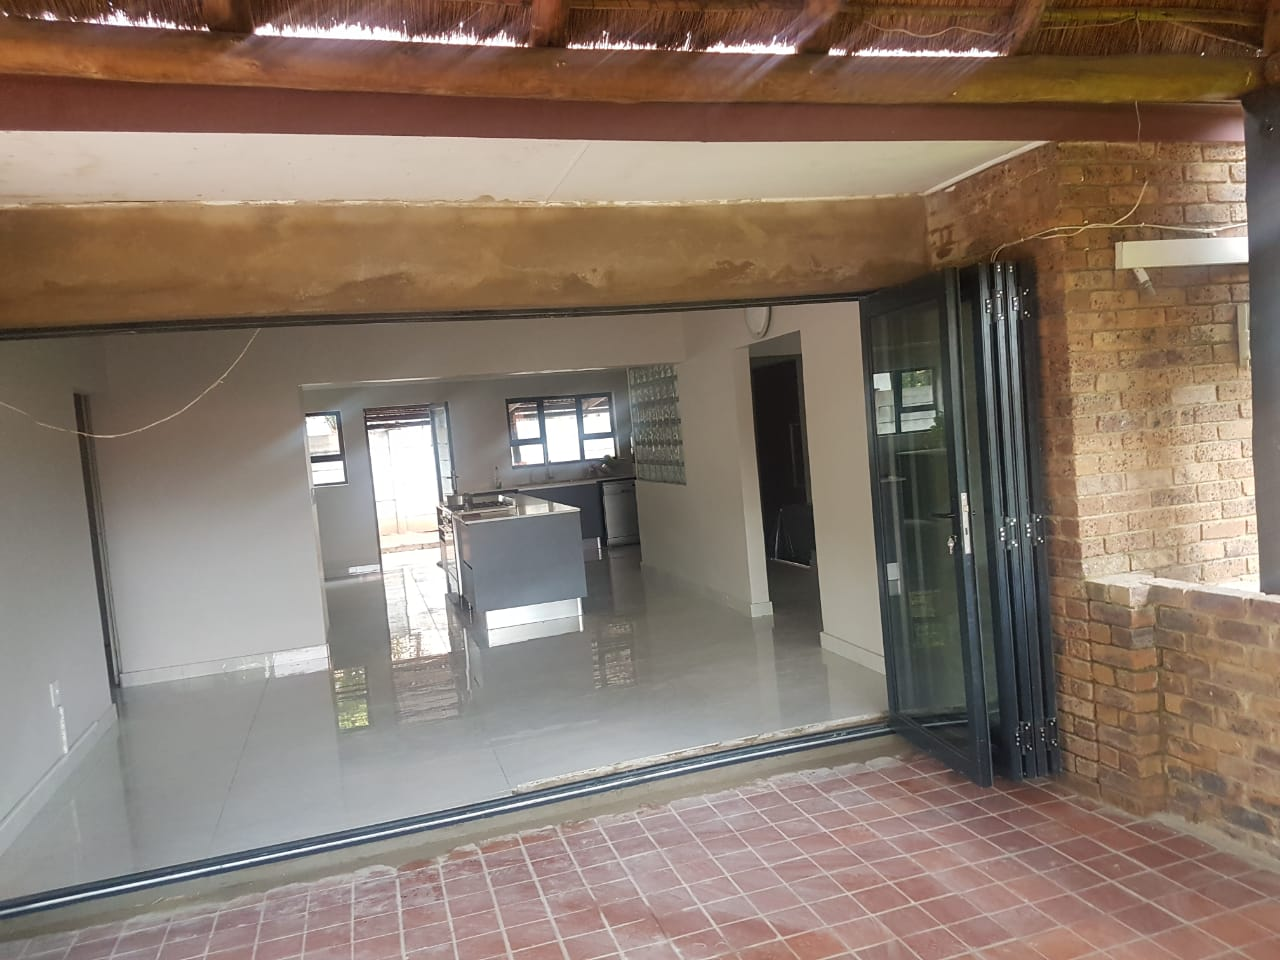 Completed Installation - Window, Door, and Wall all Removed, I-Beam Plastered and Finished Off for Client as Painting and Finishing is Not Done by All in One